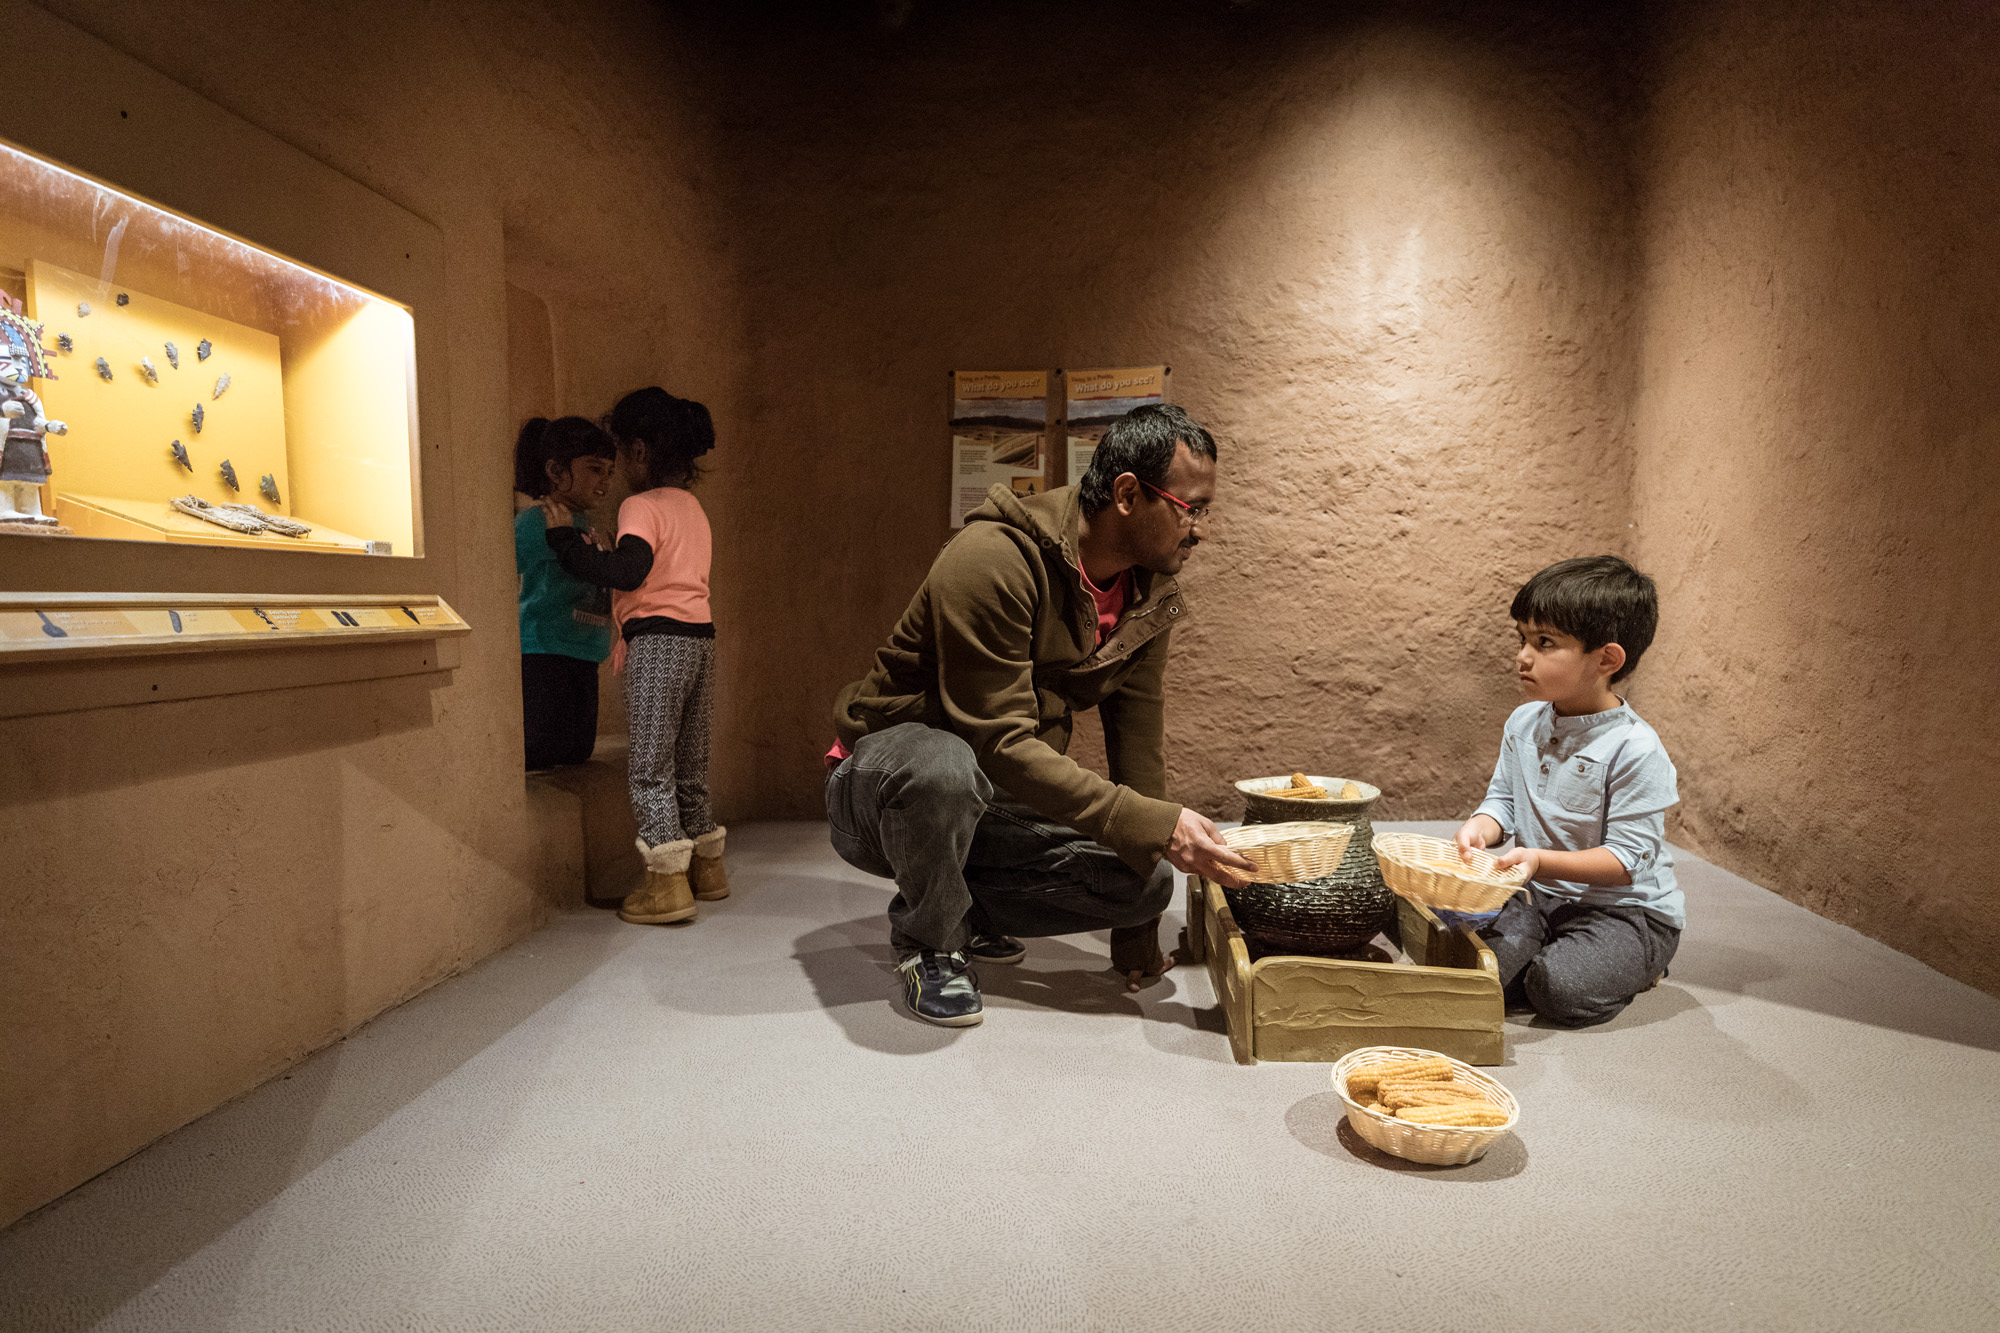 Inside a recreated pueblo in the Crown Family PlayLab, a child and an adult play with baskets holding fake corn. Two girls stand in the doorway nearby.